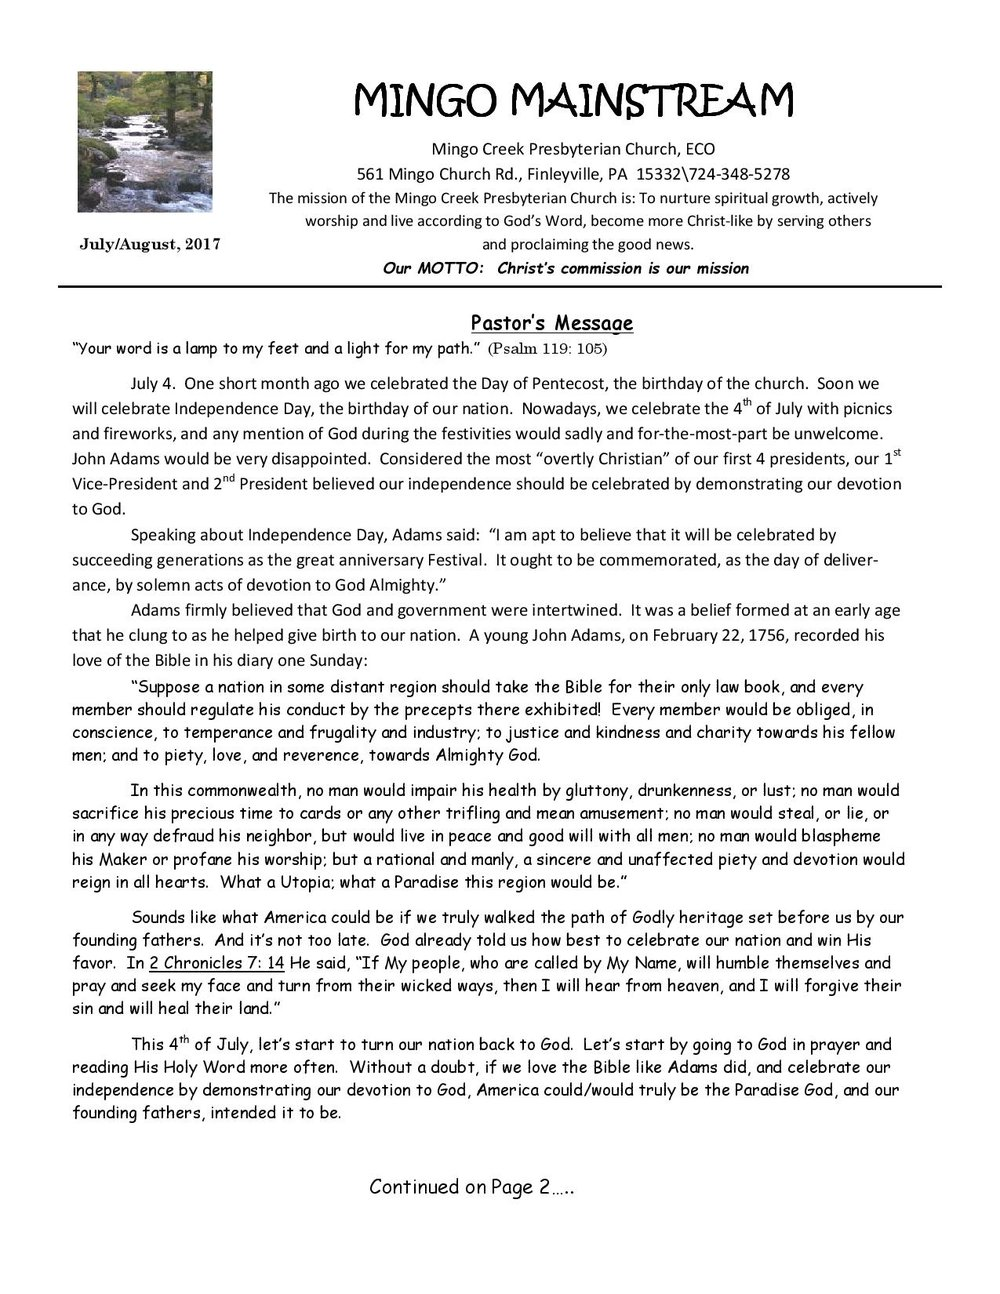 JULY AUGUST NEWSLETTER-page-001.jpg